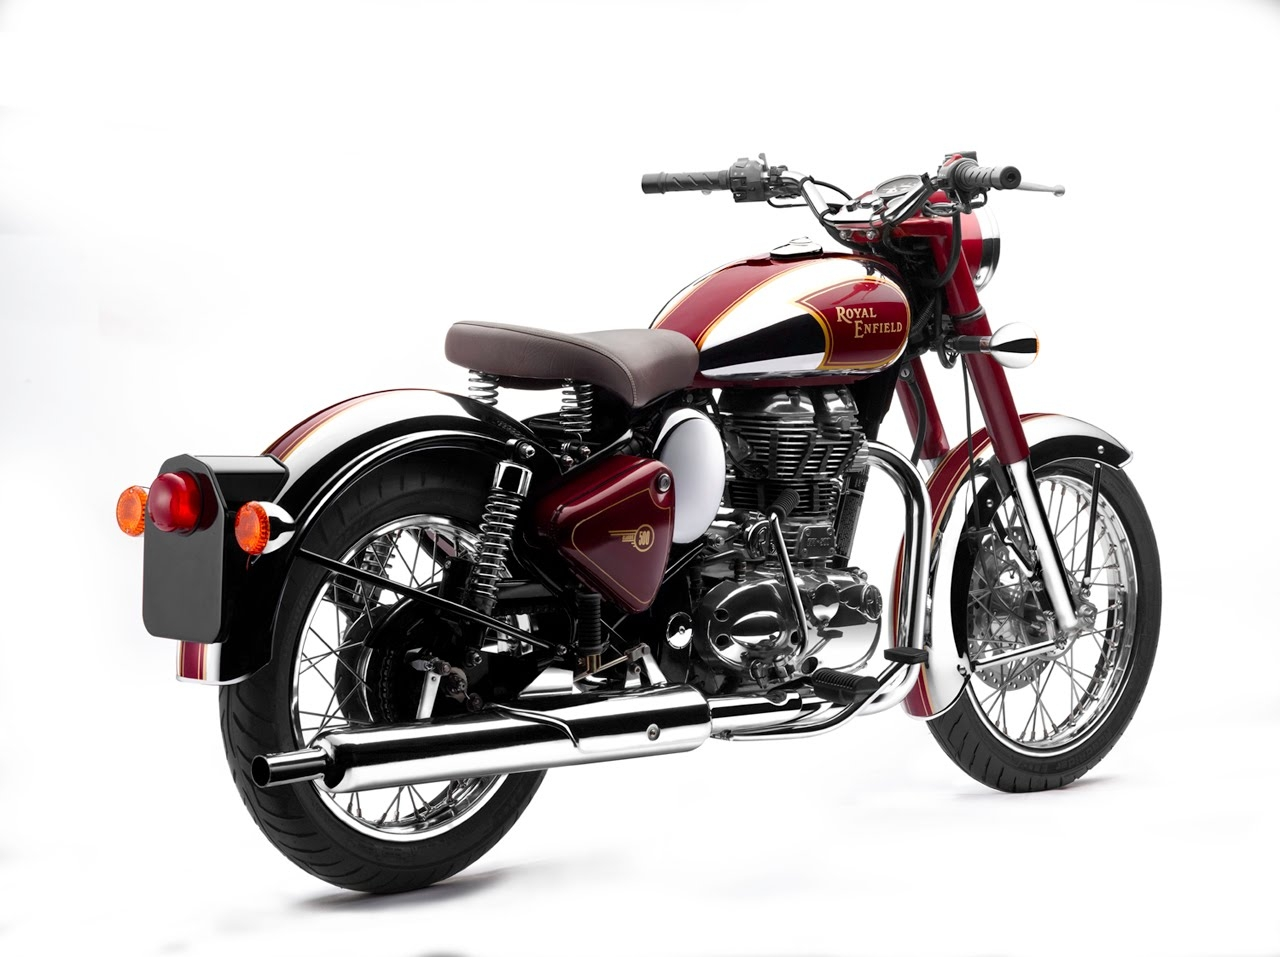 Royal Enfield - Royal Enfield Classic DELUX